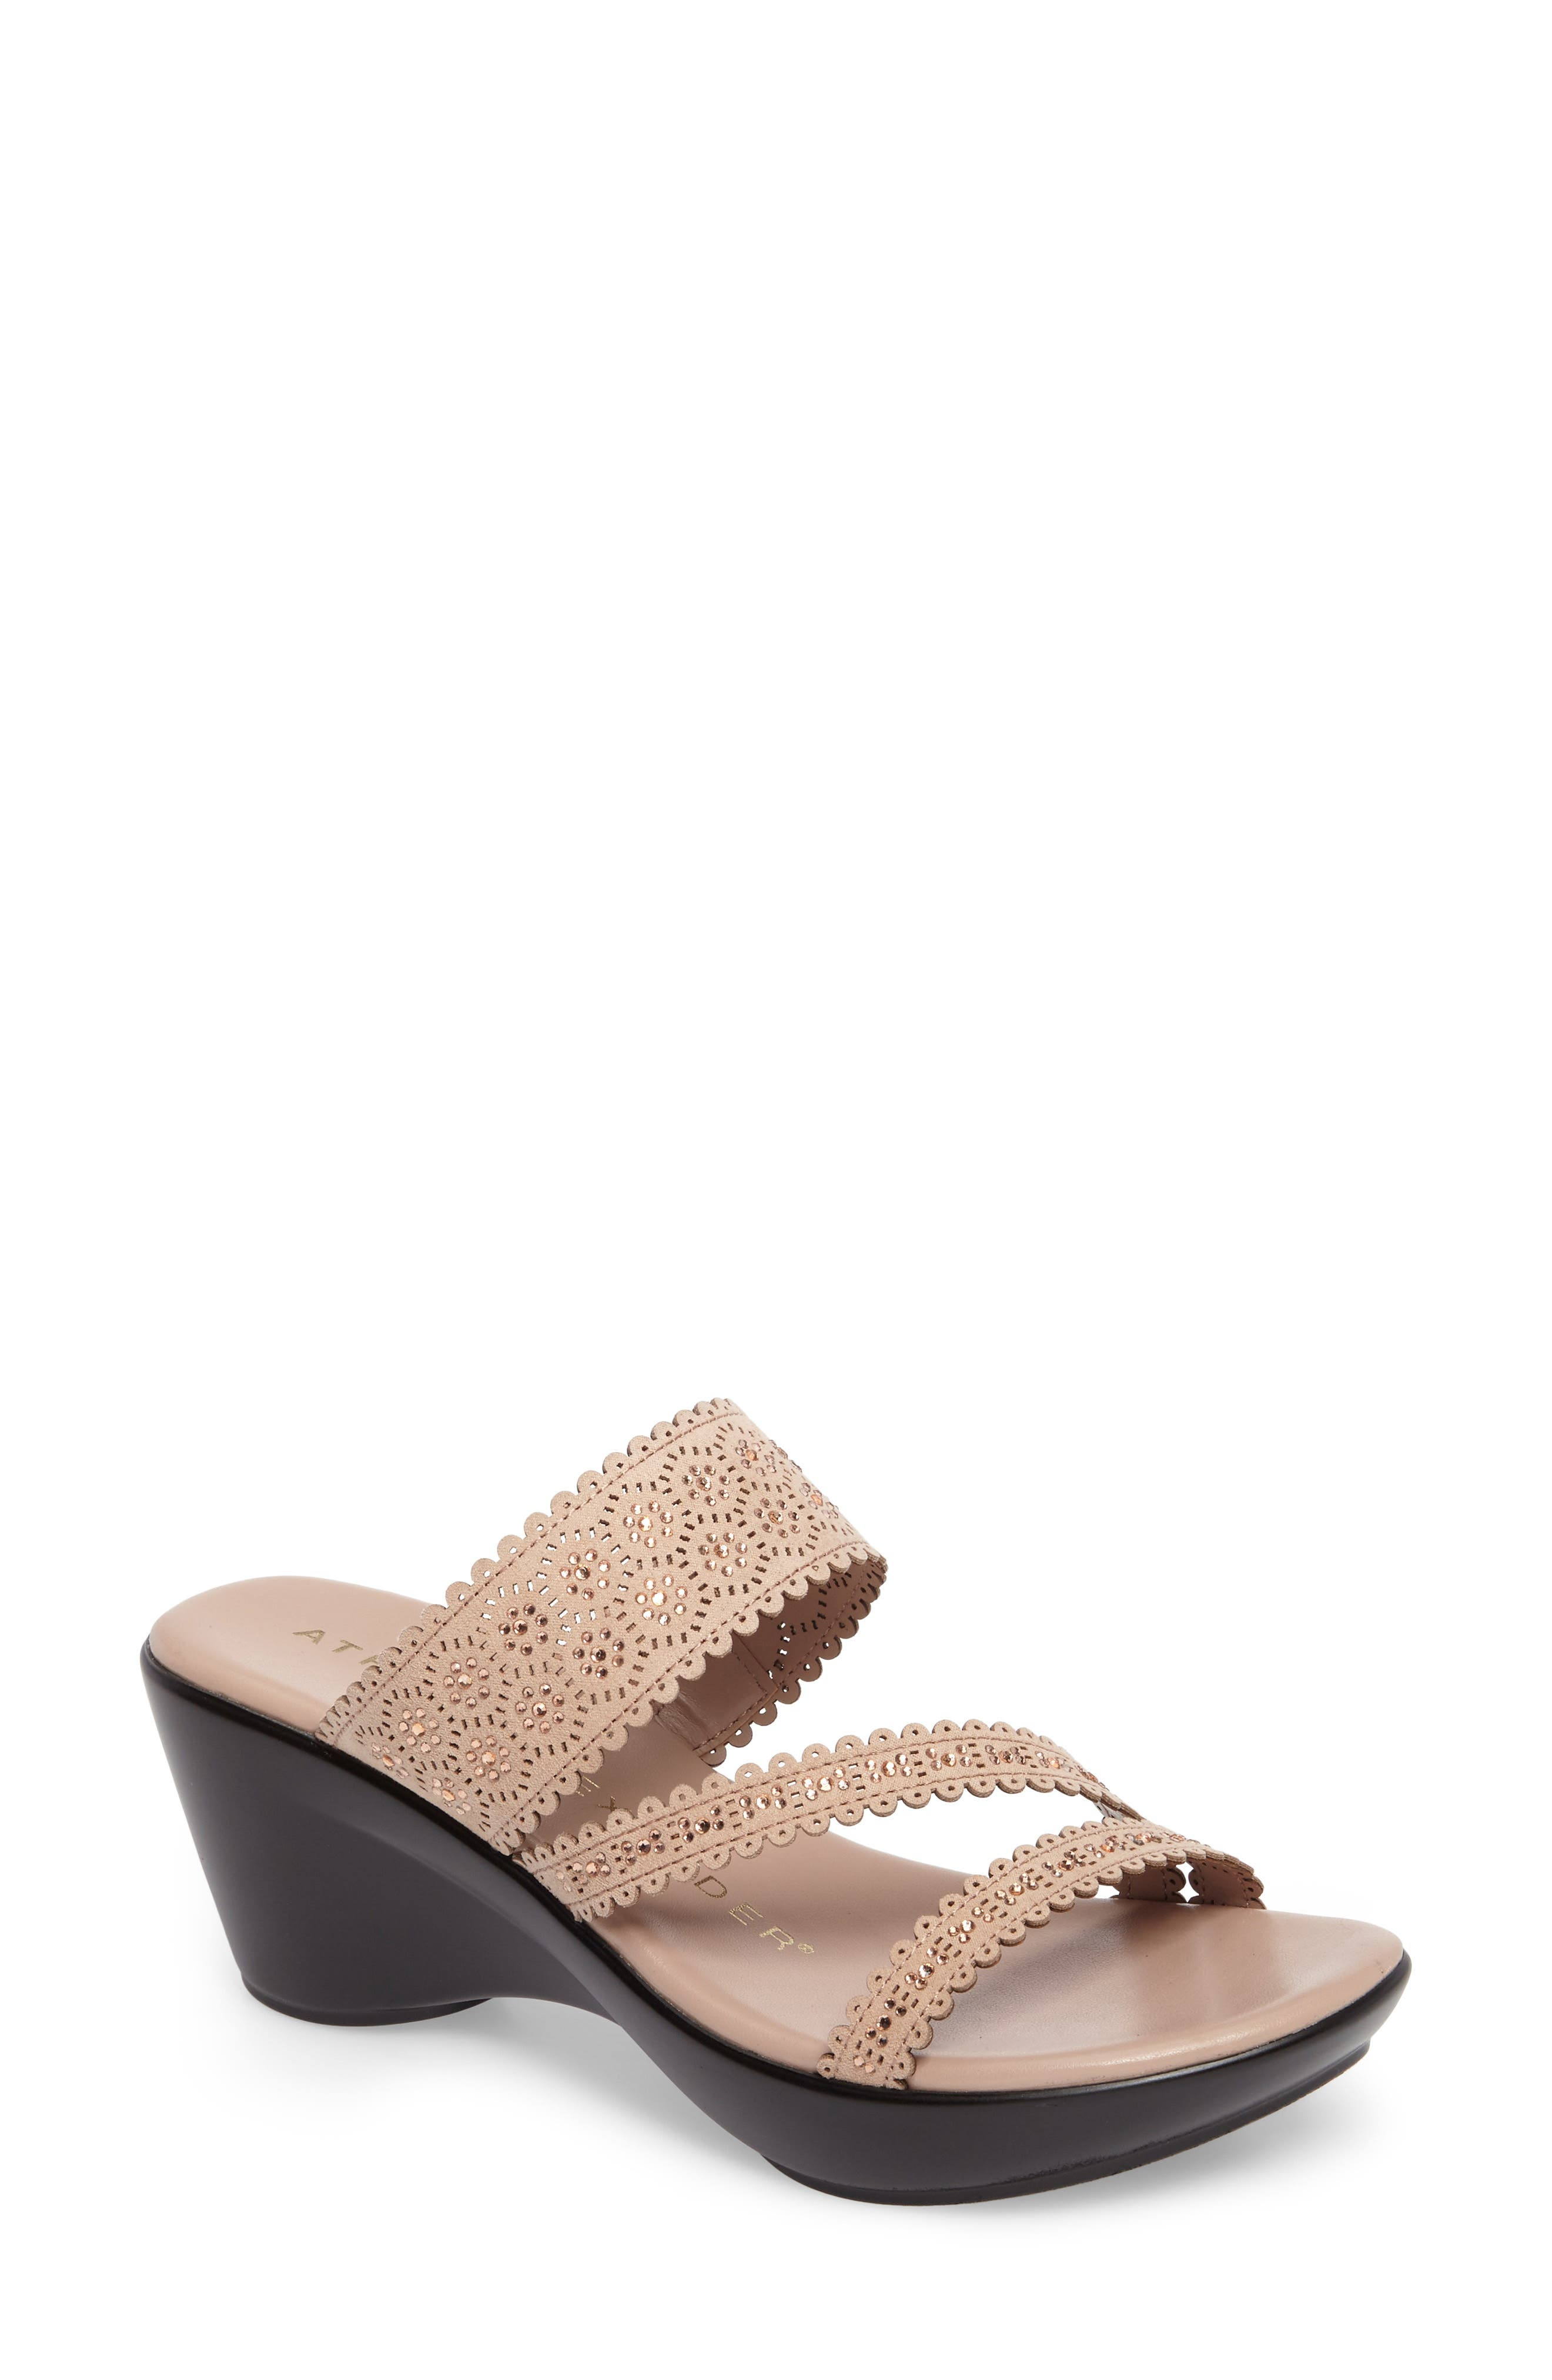 Poppy Wedge Sandal,                         Main,                         color, BLUSH SYNTHETIC